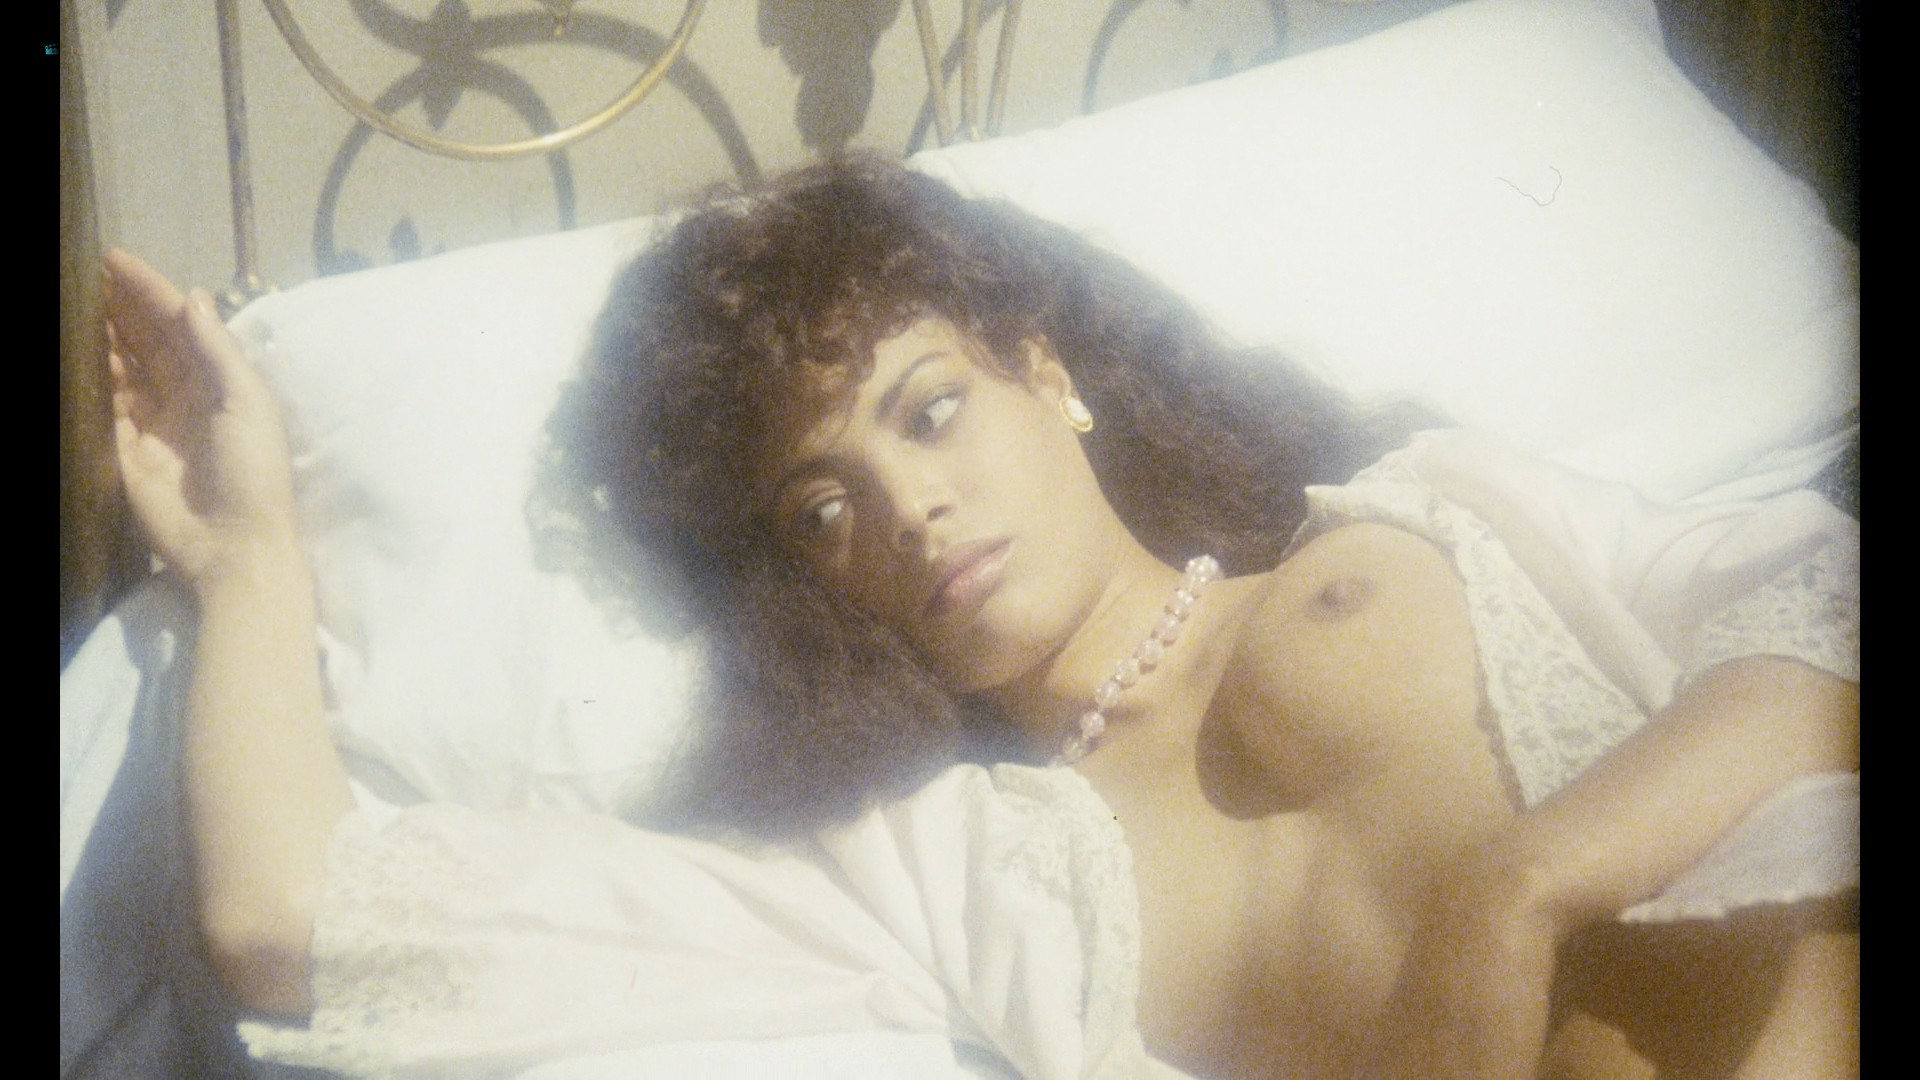 Josephine Jacqueline Jones nude full frontal Florence Guérin and others nude sex too - Black Venus (1983) HD 1080p Web (12)